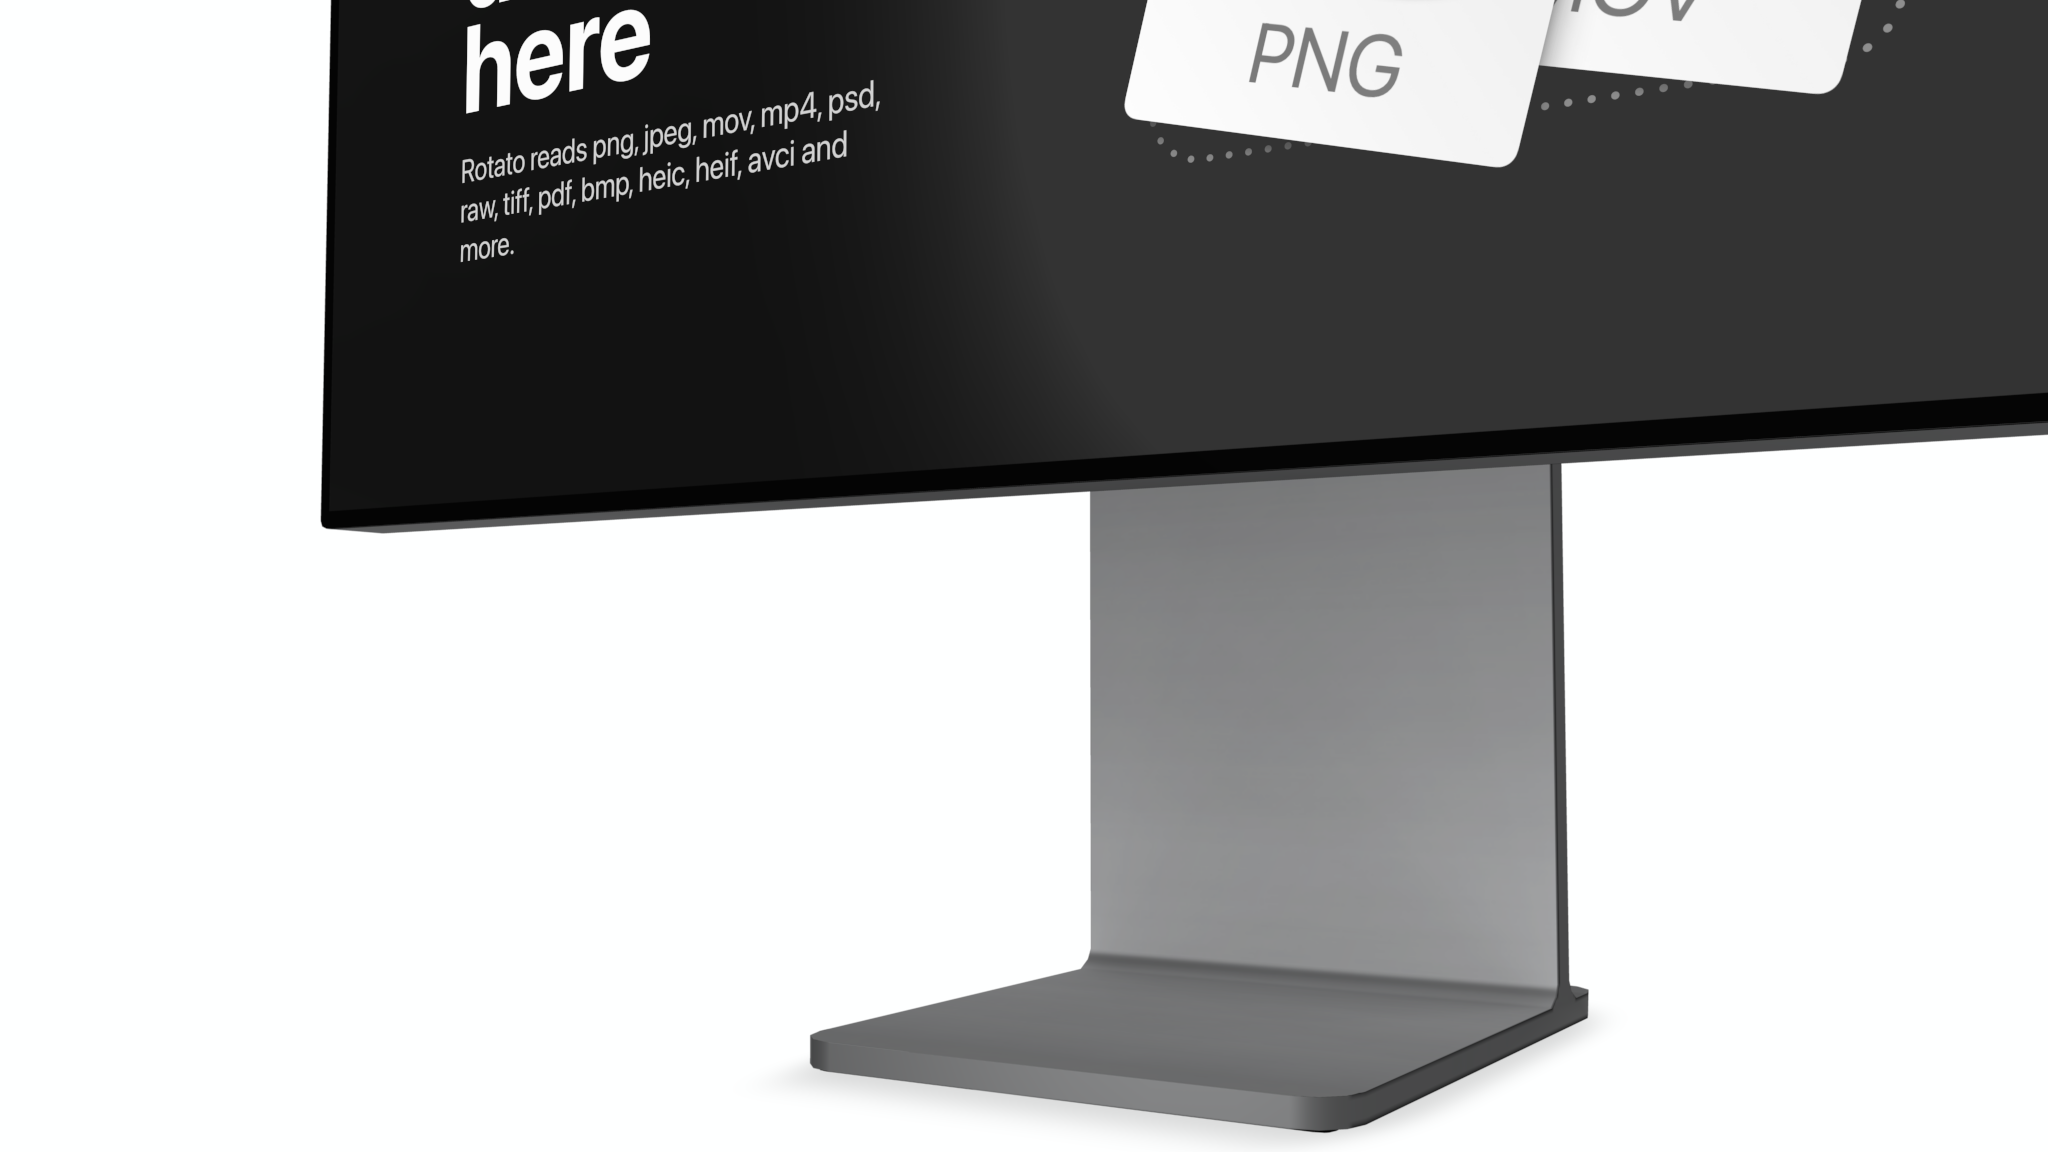 Apple Pro Display XDR Mockup